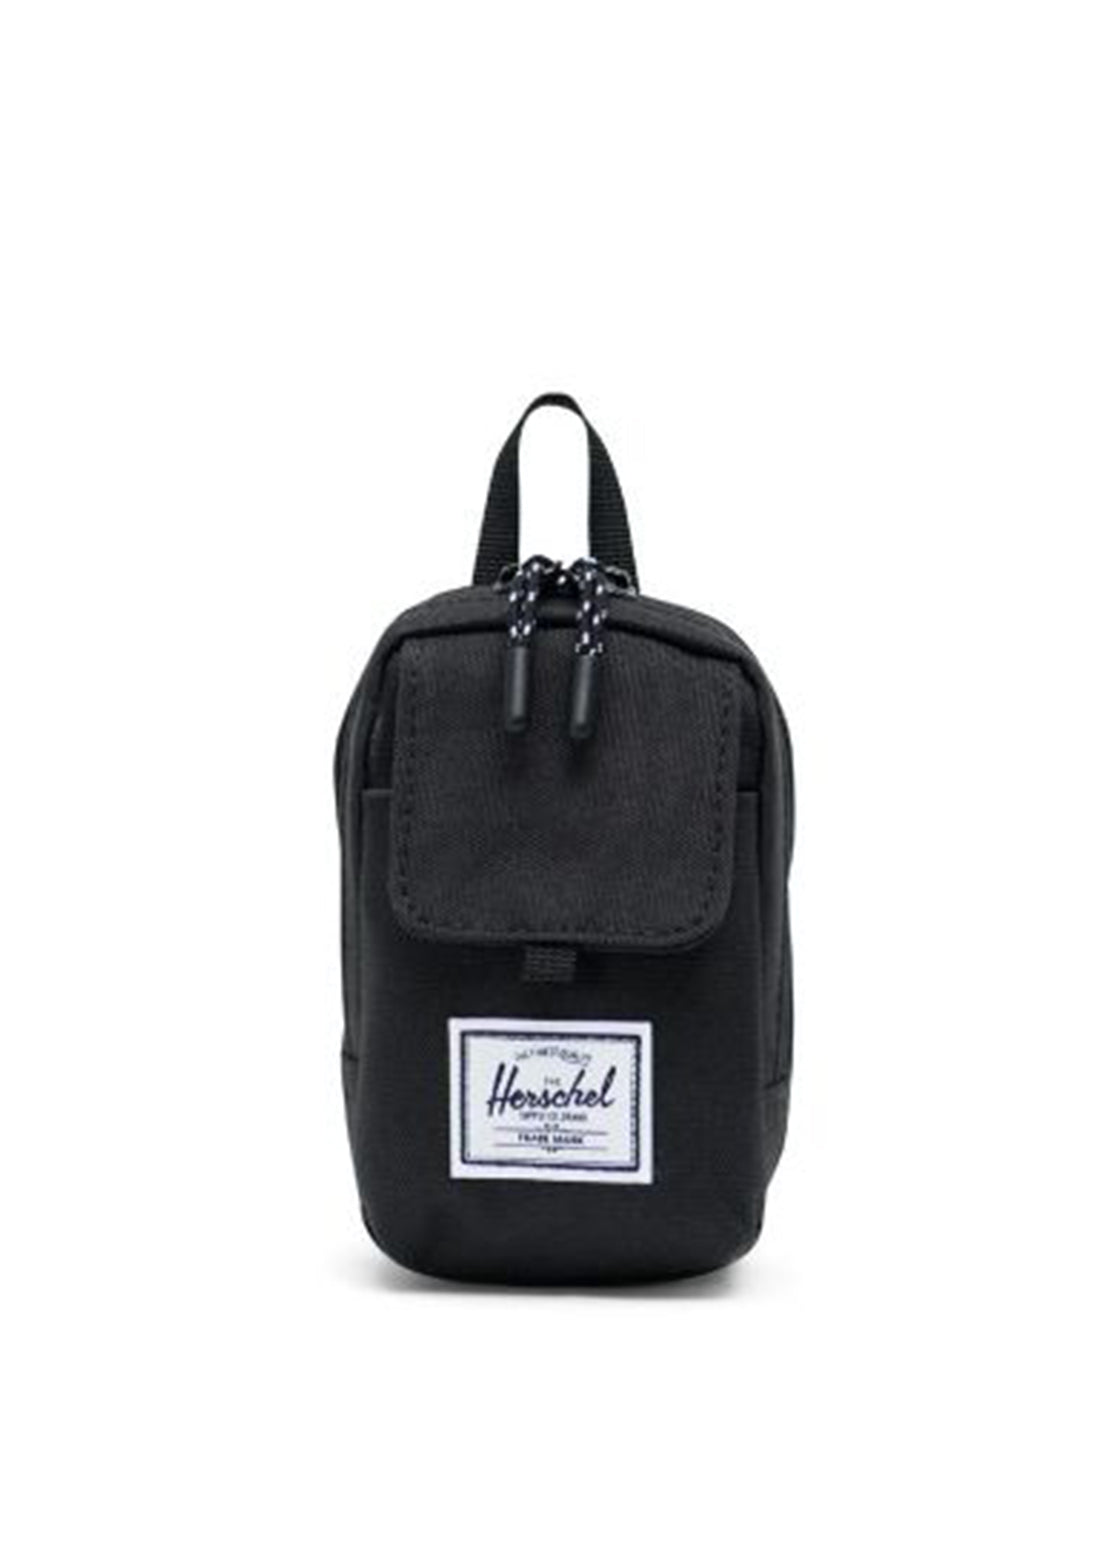 Herschel Form Small Bag Black